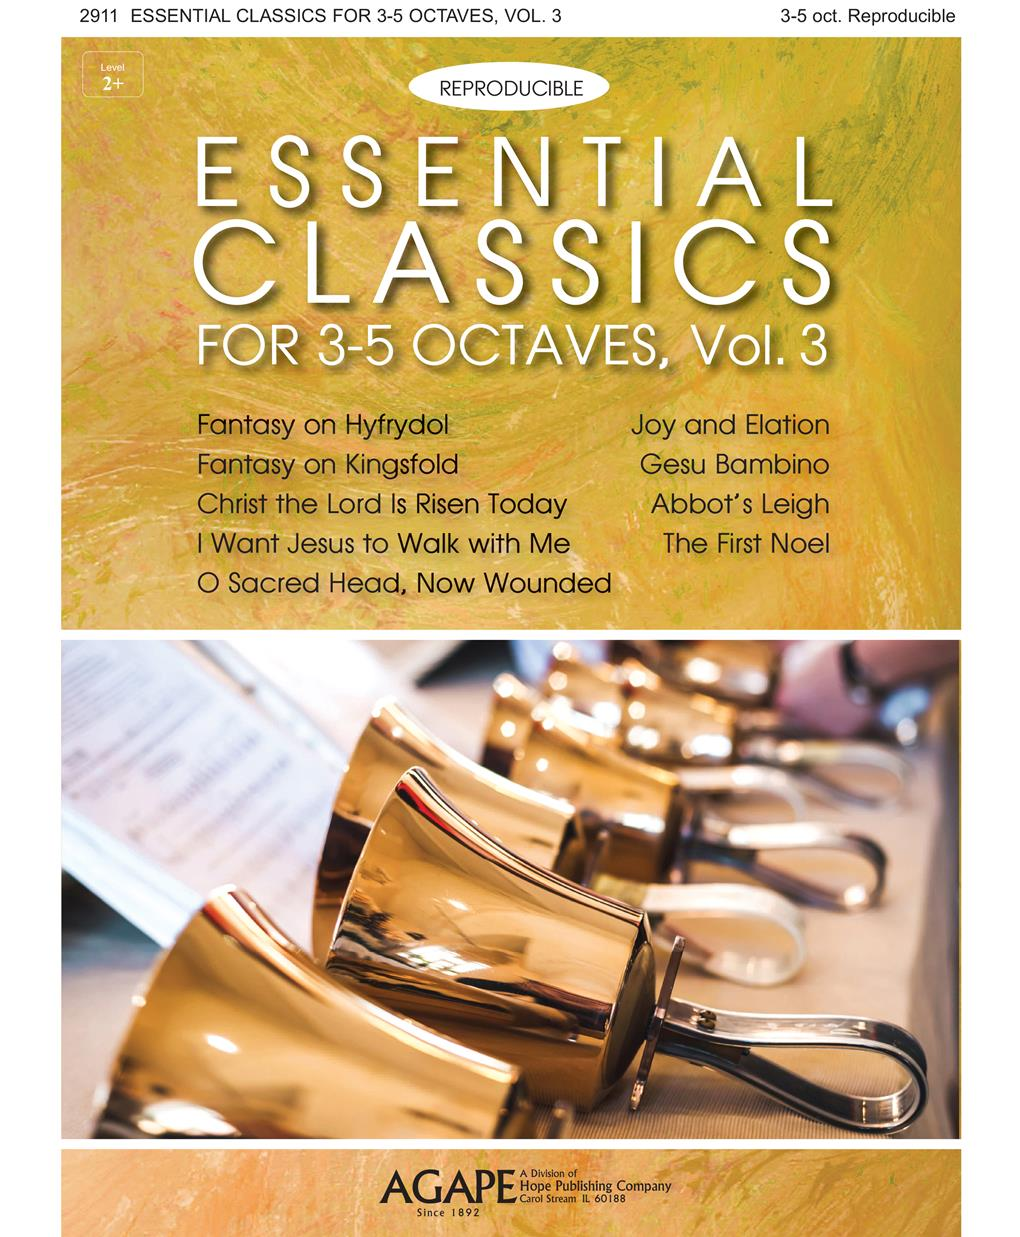 Essential Classics for 3-5 Octaves Vol. 3 (Reproducible) Cover Image